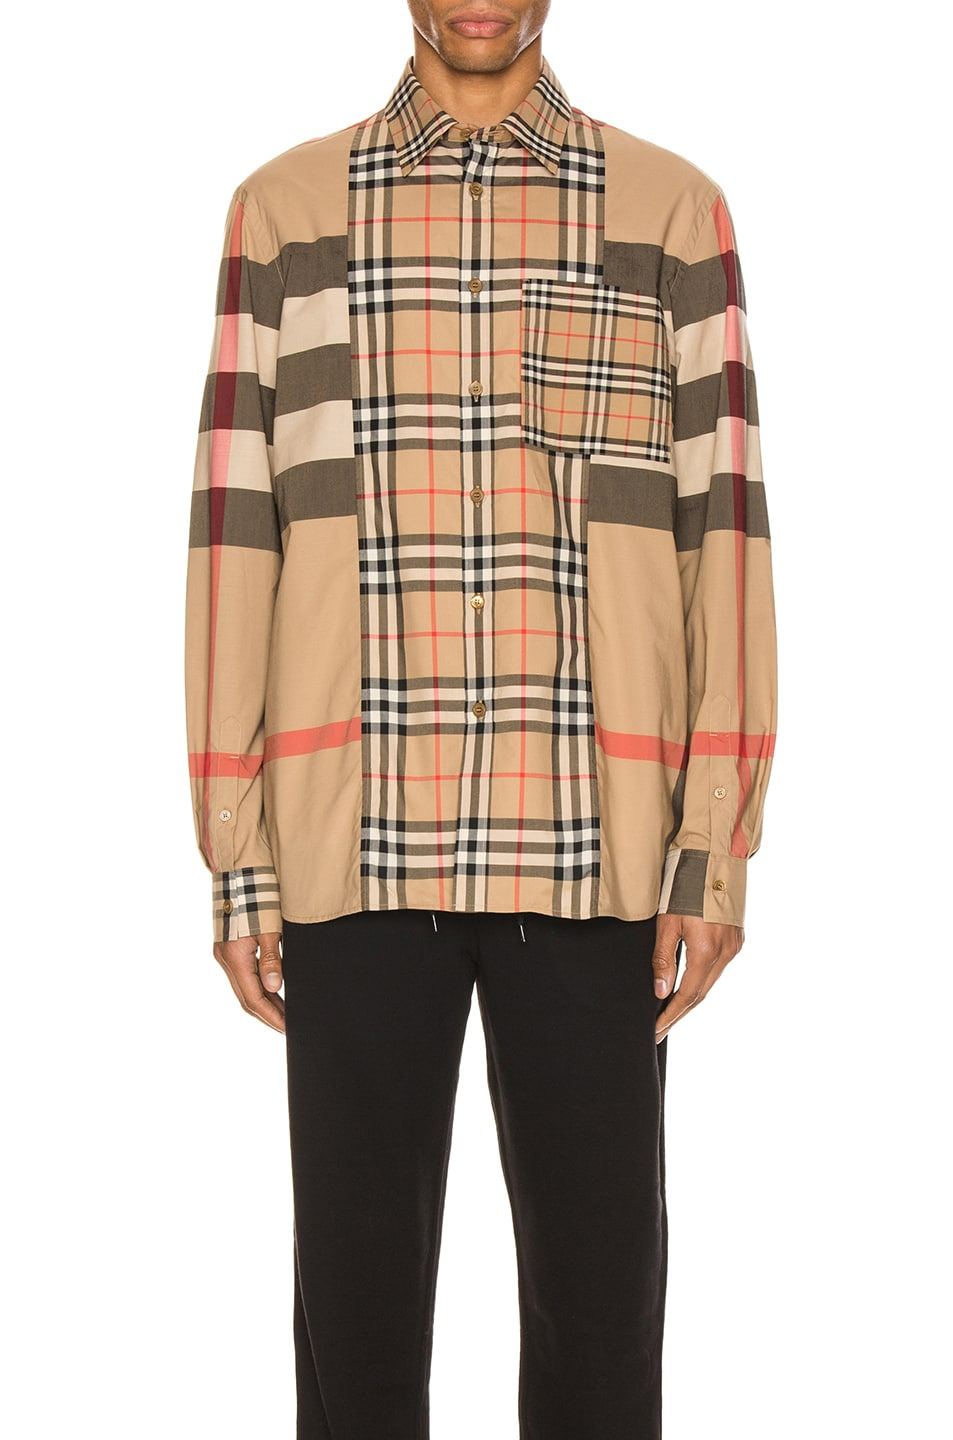 Image 1 of Burberry Tisdale Long Sleeve Shirt in Archive Beige IP Check